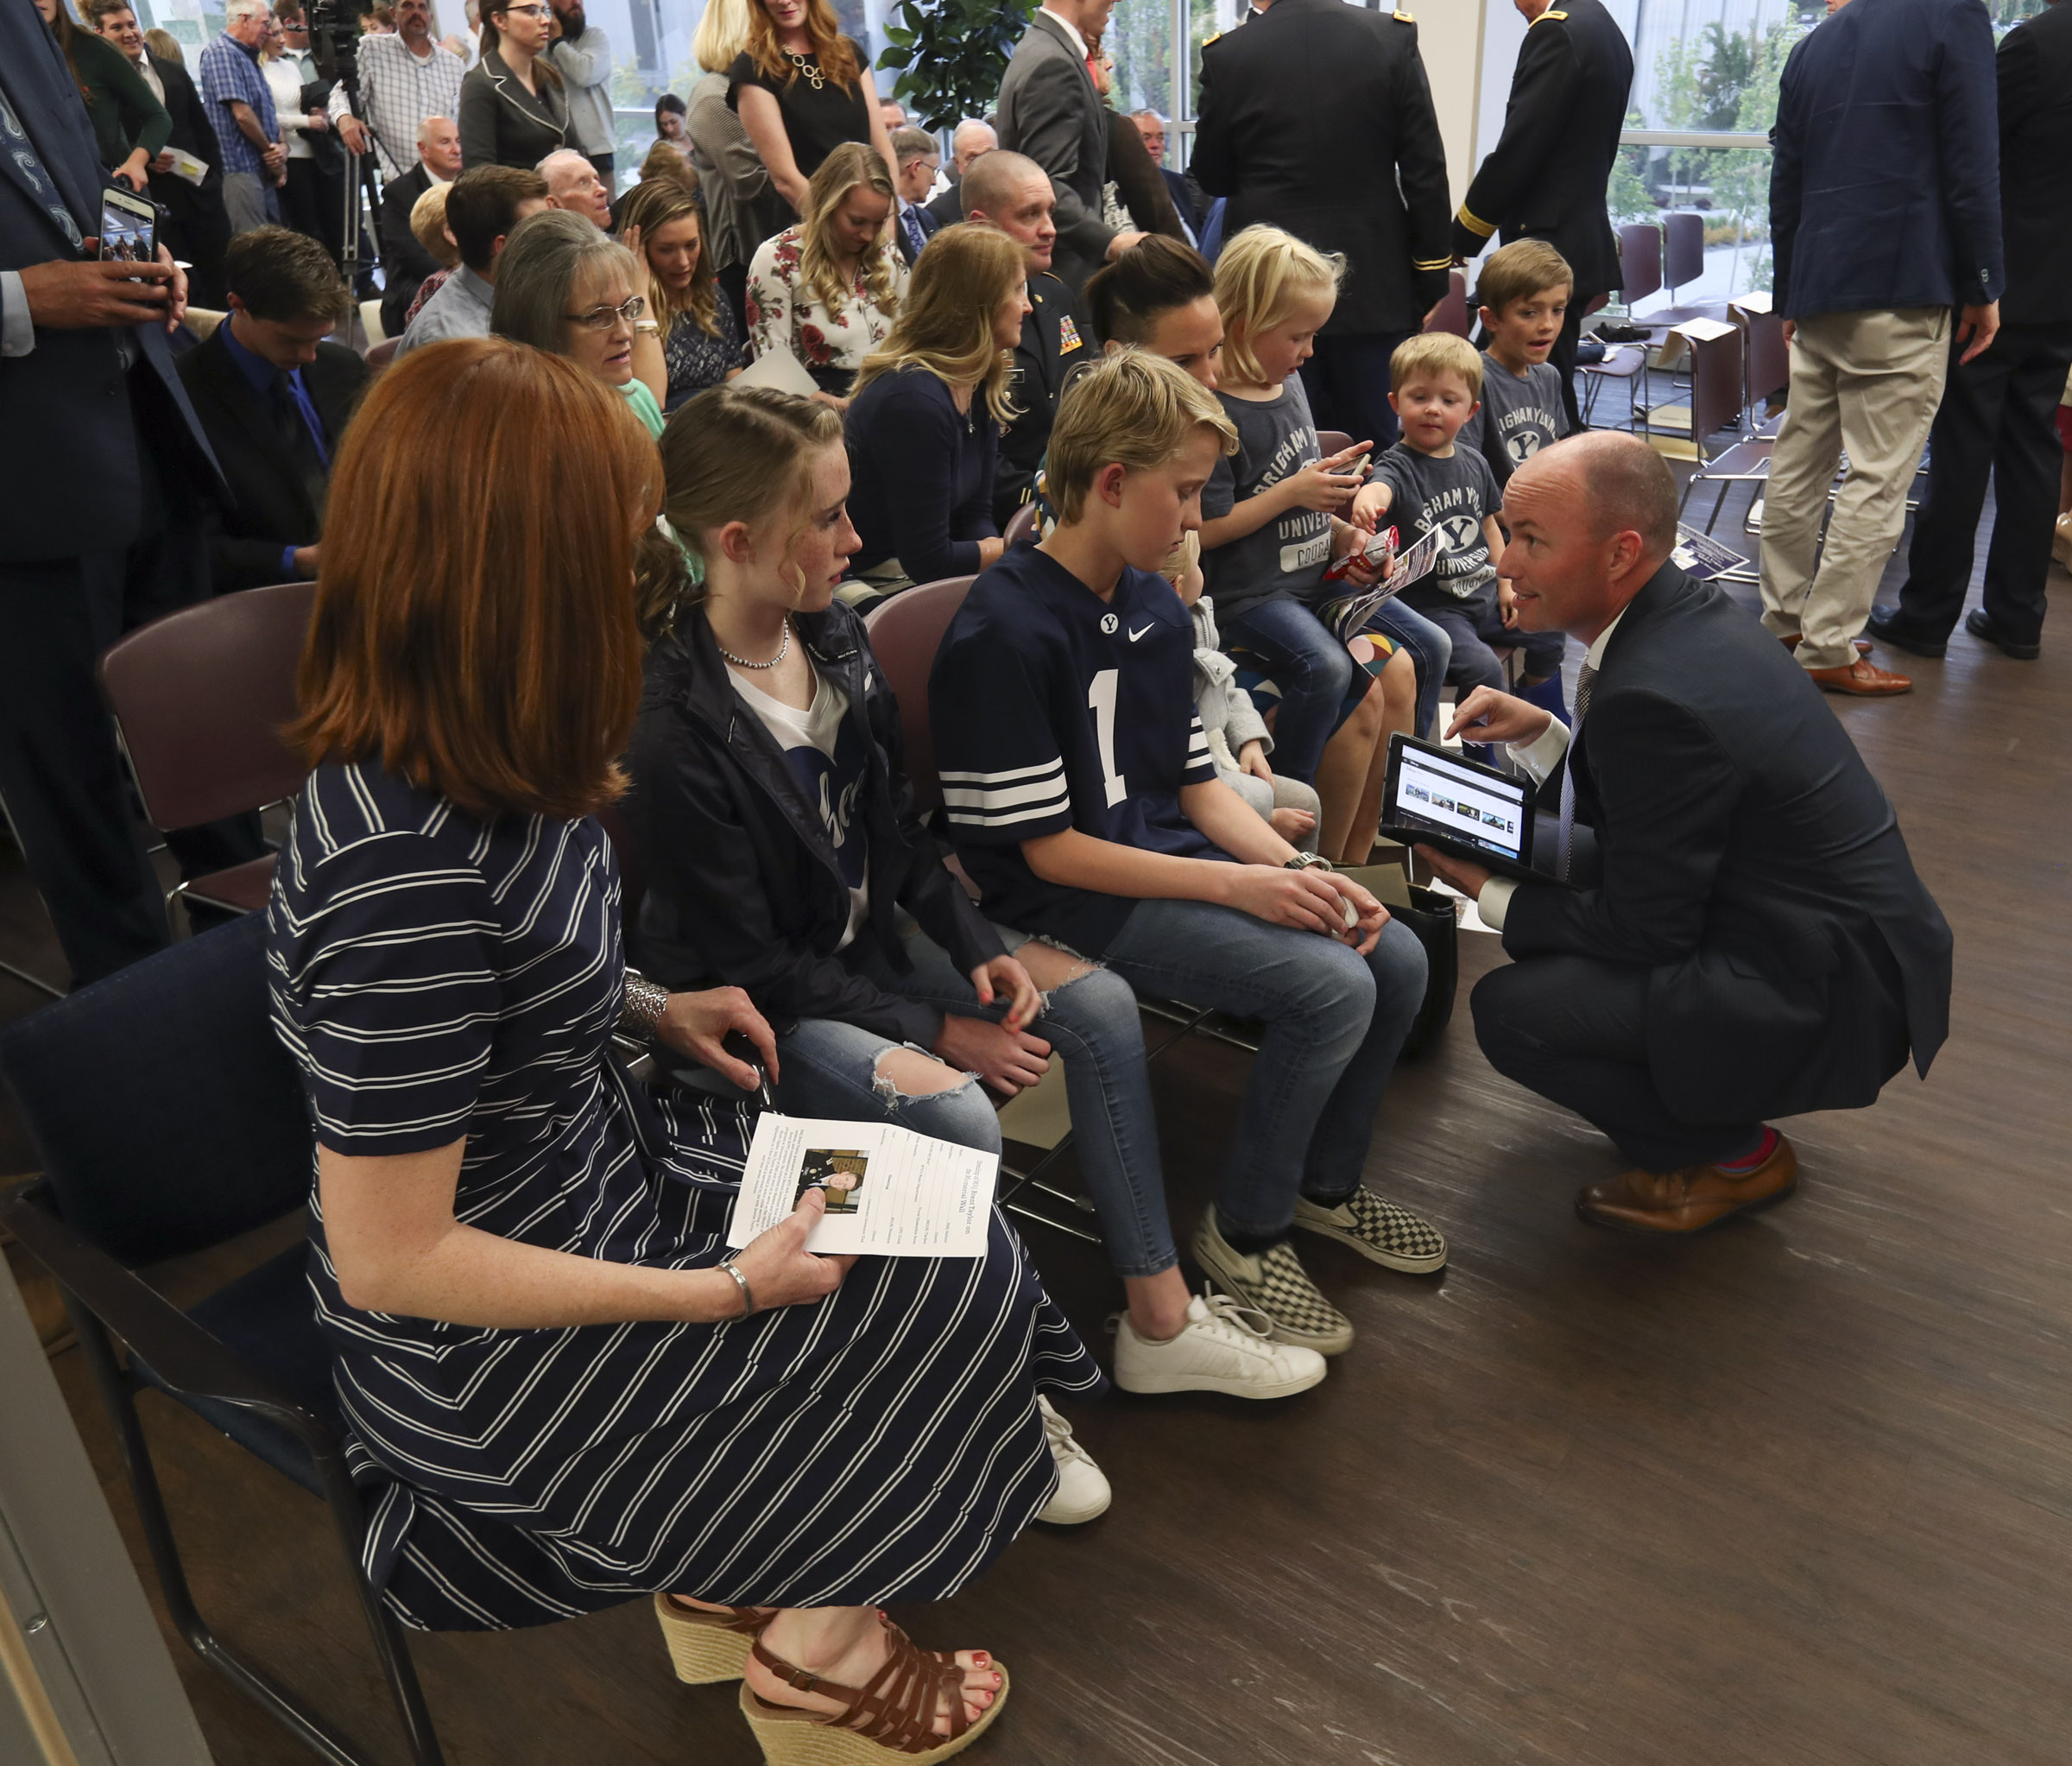 Lt. Gov. Spencer Cox talks with Jennie Taylor and her children during a ceremony where the name of her husband, Maj. Brent Taylor, was added to the Reflection Room Memorial Wall in the Wilkinson Center on the BYU campus in Provo on Thursday, May 23, 2019. Taylor was killed in Afghanistan in 2018.